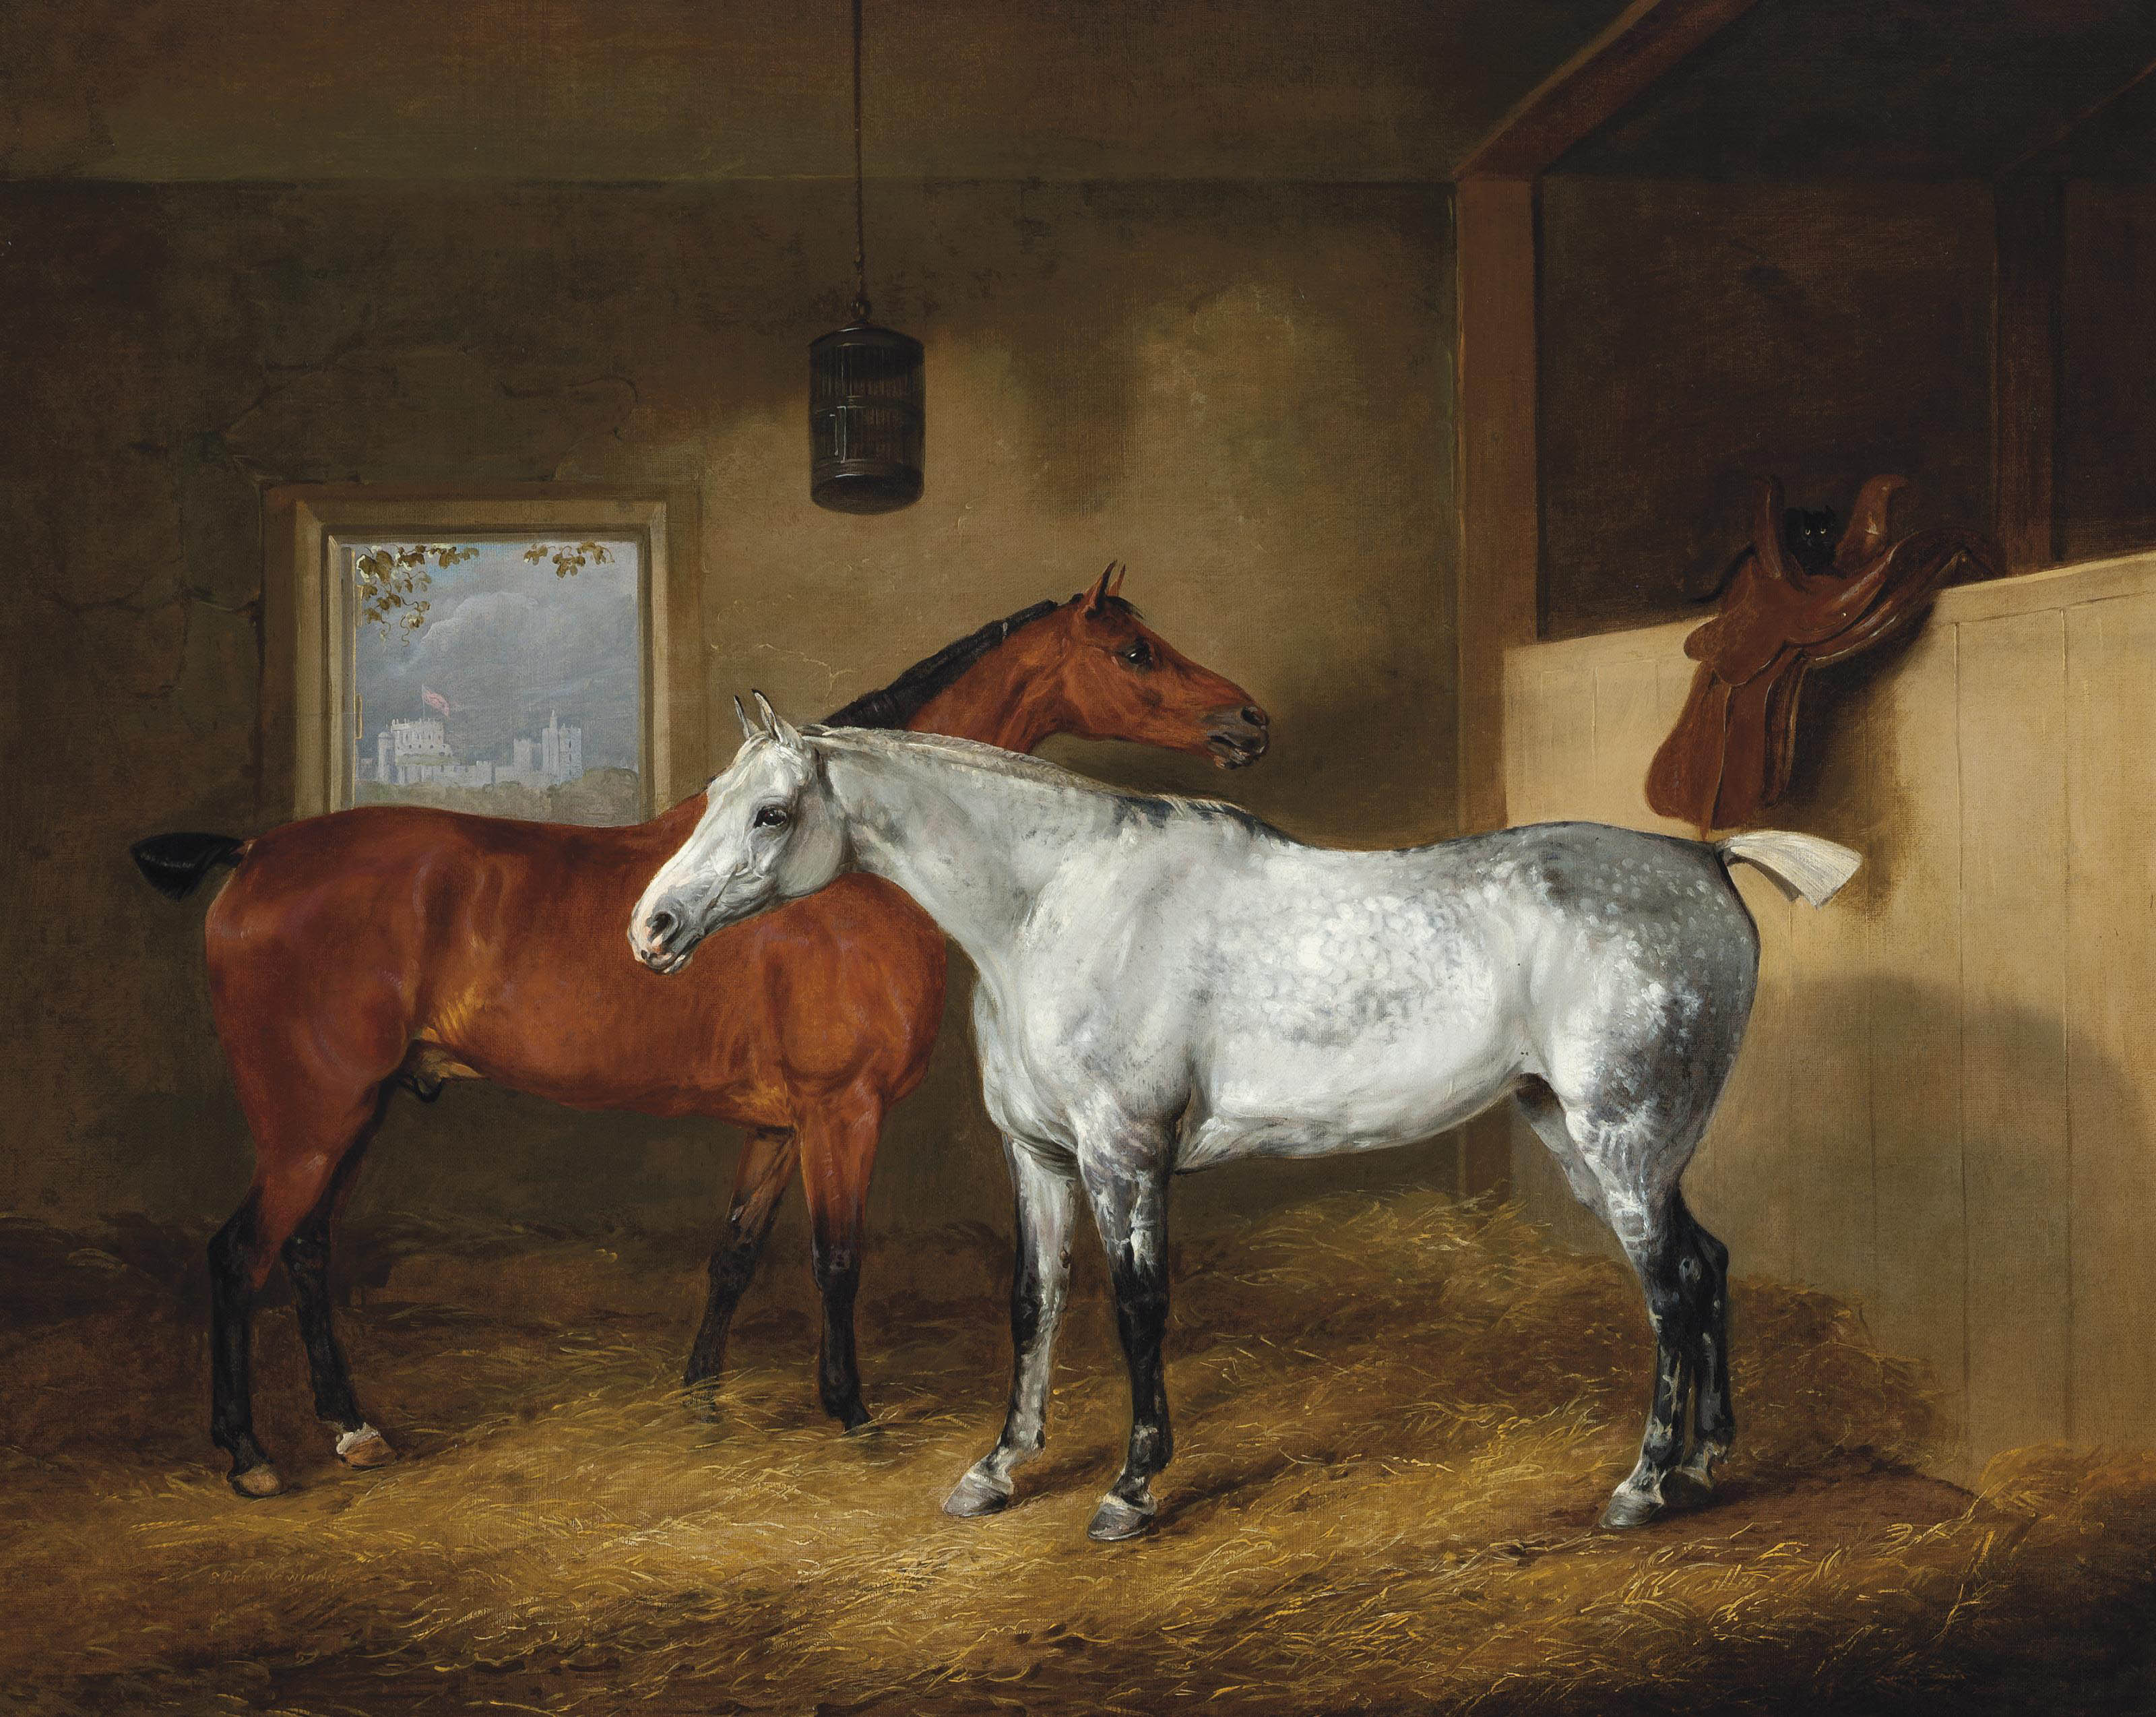 A dappled grey and a chestnut hunter in a stable, with Windsor Castle beyond